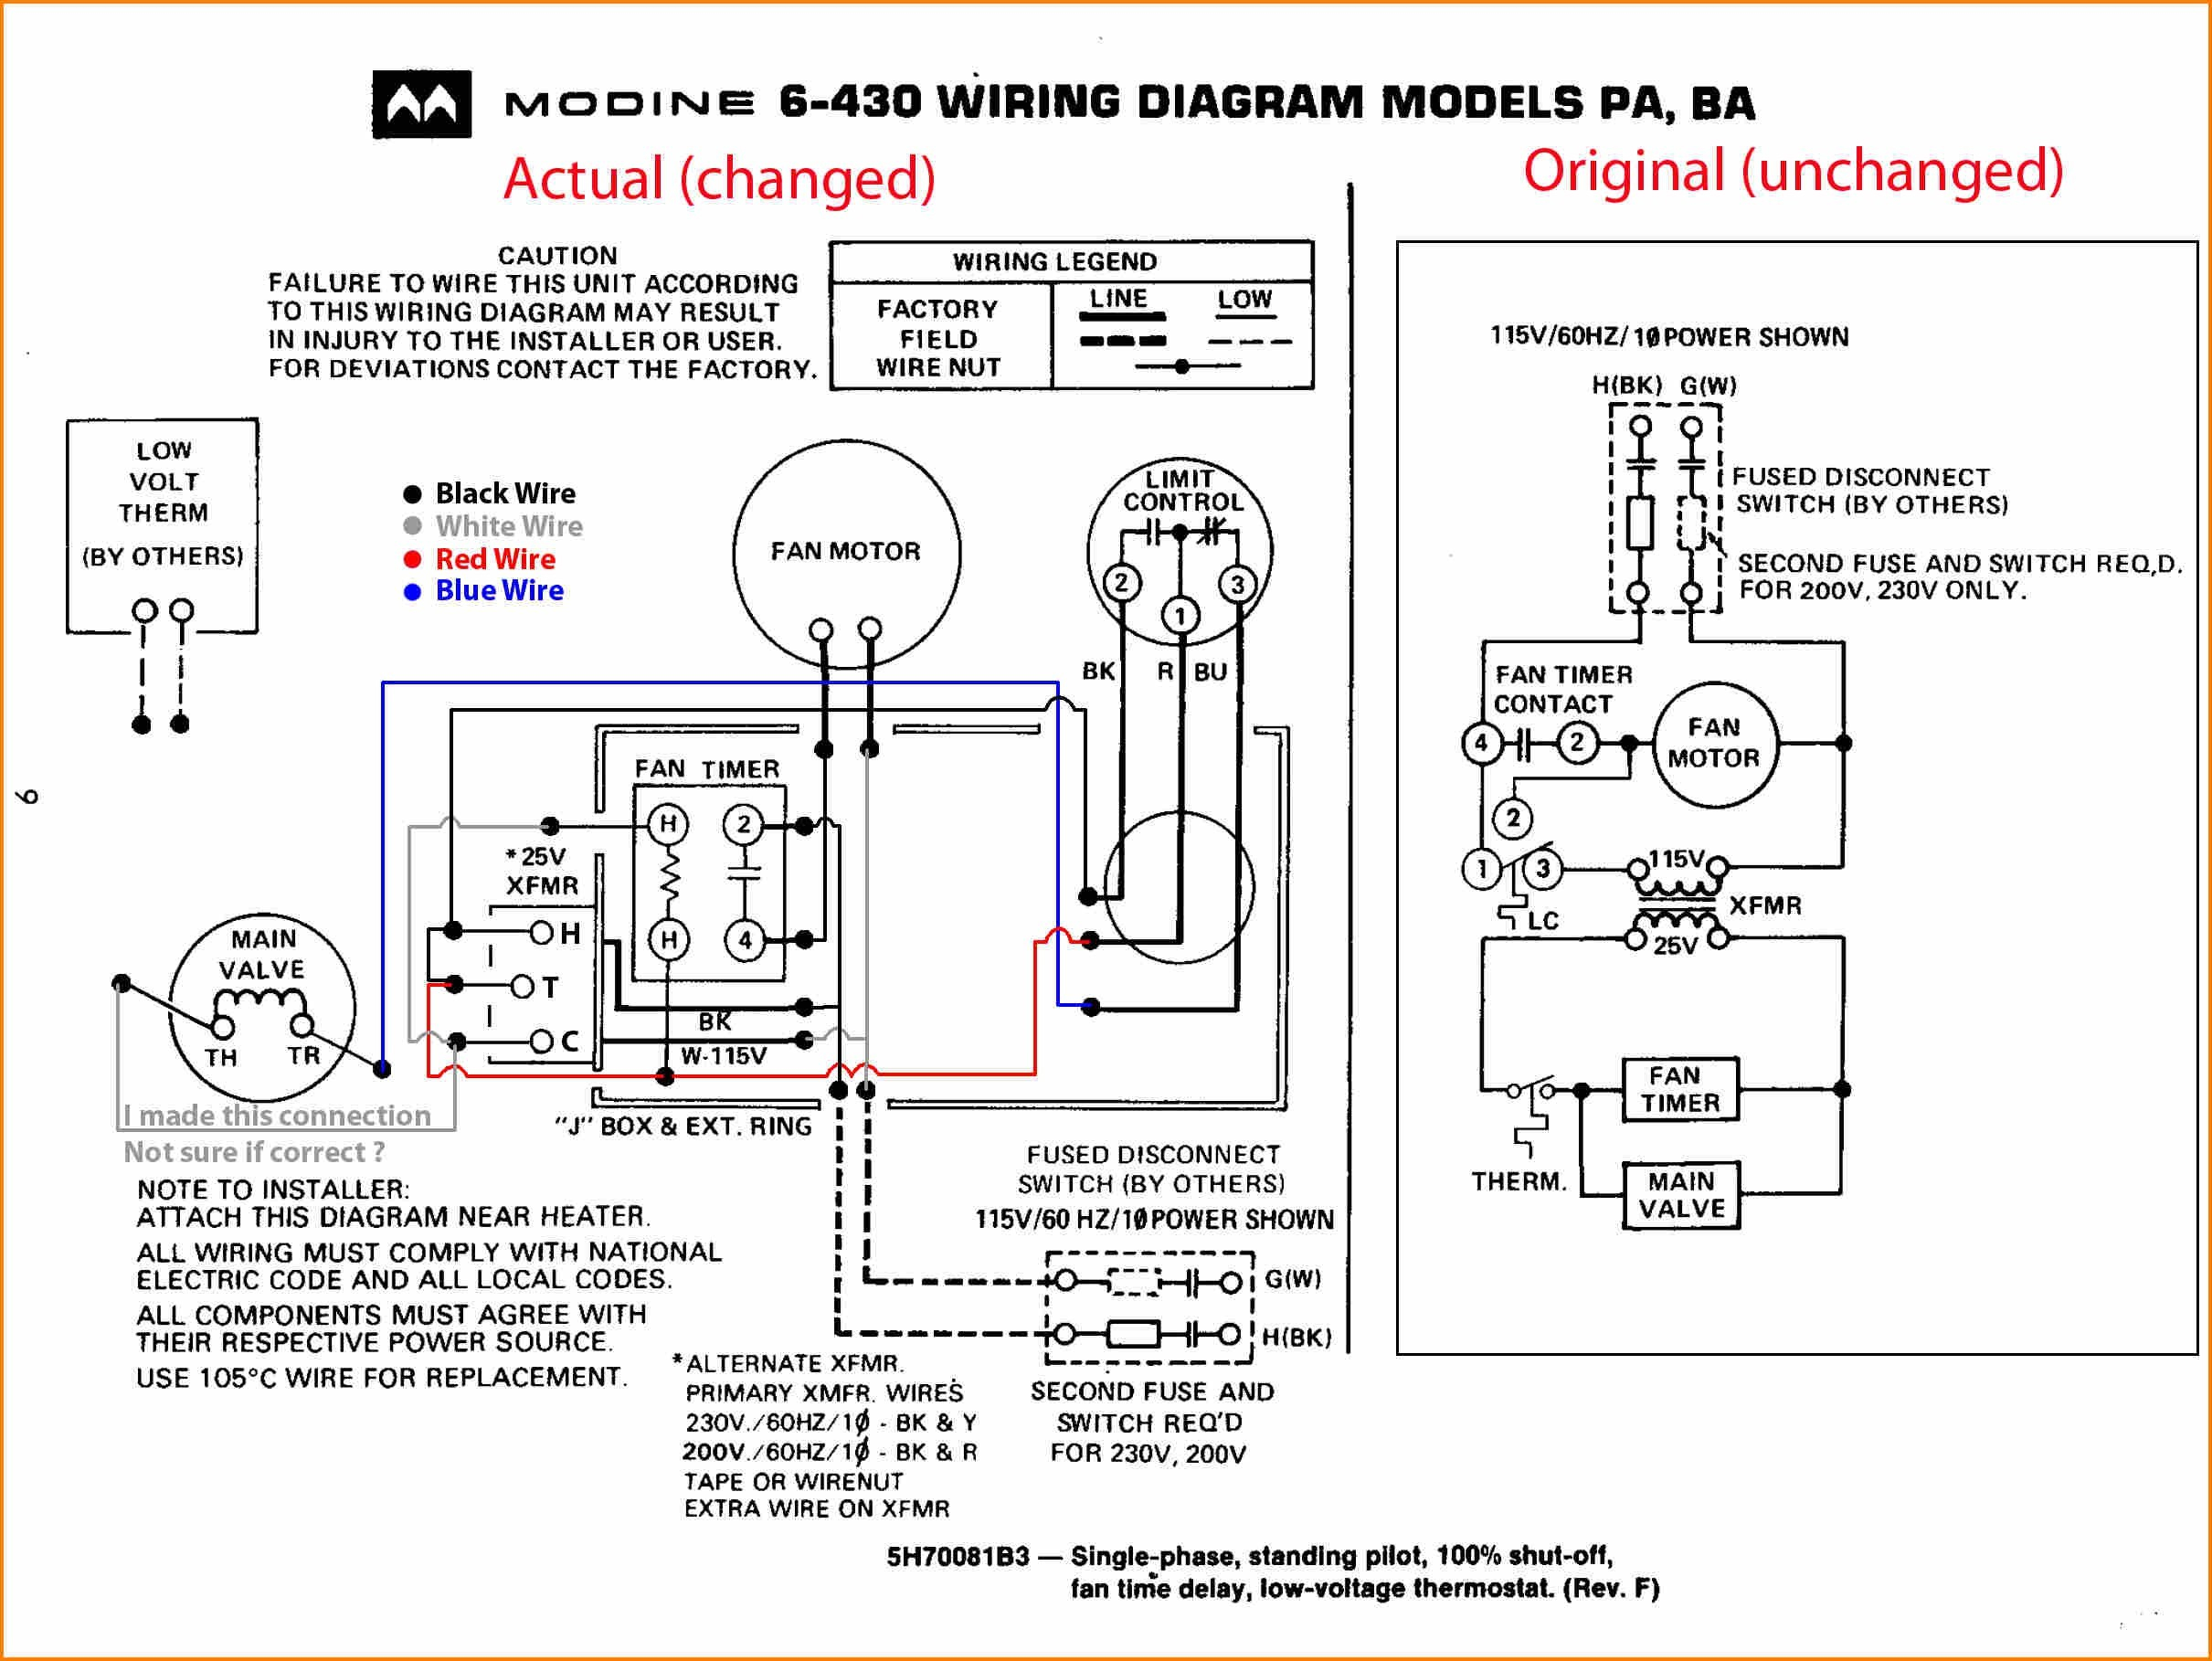 furnace fan motor wiring diagram Collection-Wiring Diagram for Fasco Blower Motor Best Ge Furnace Blower Motor Wiring Diagram 3 Speed Furnace 10-n